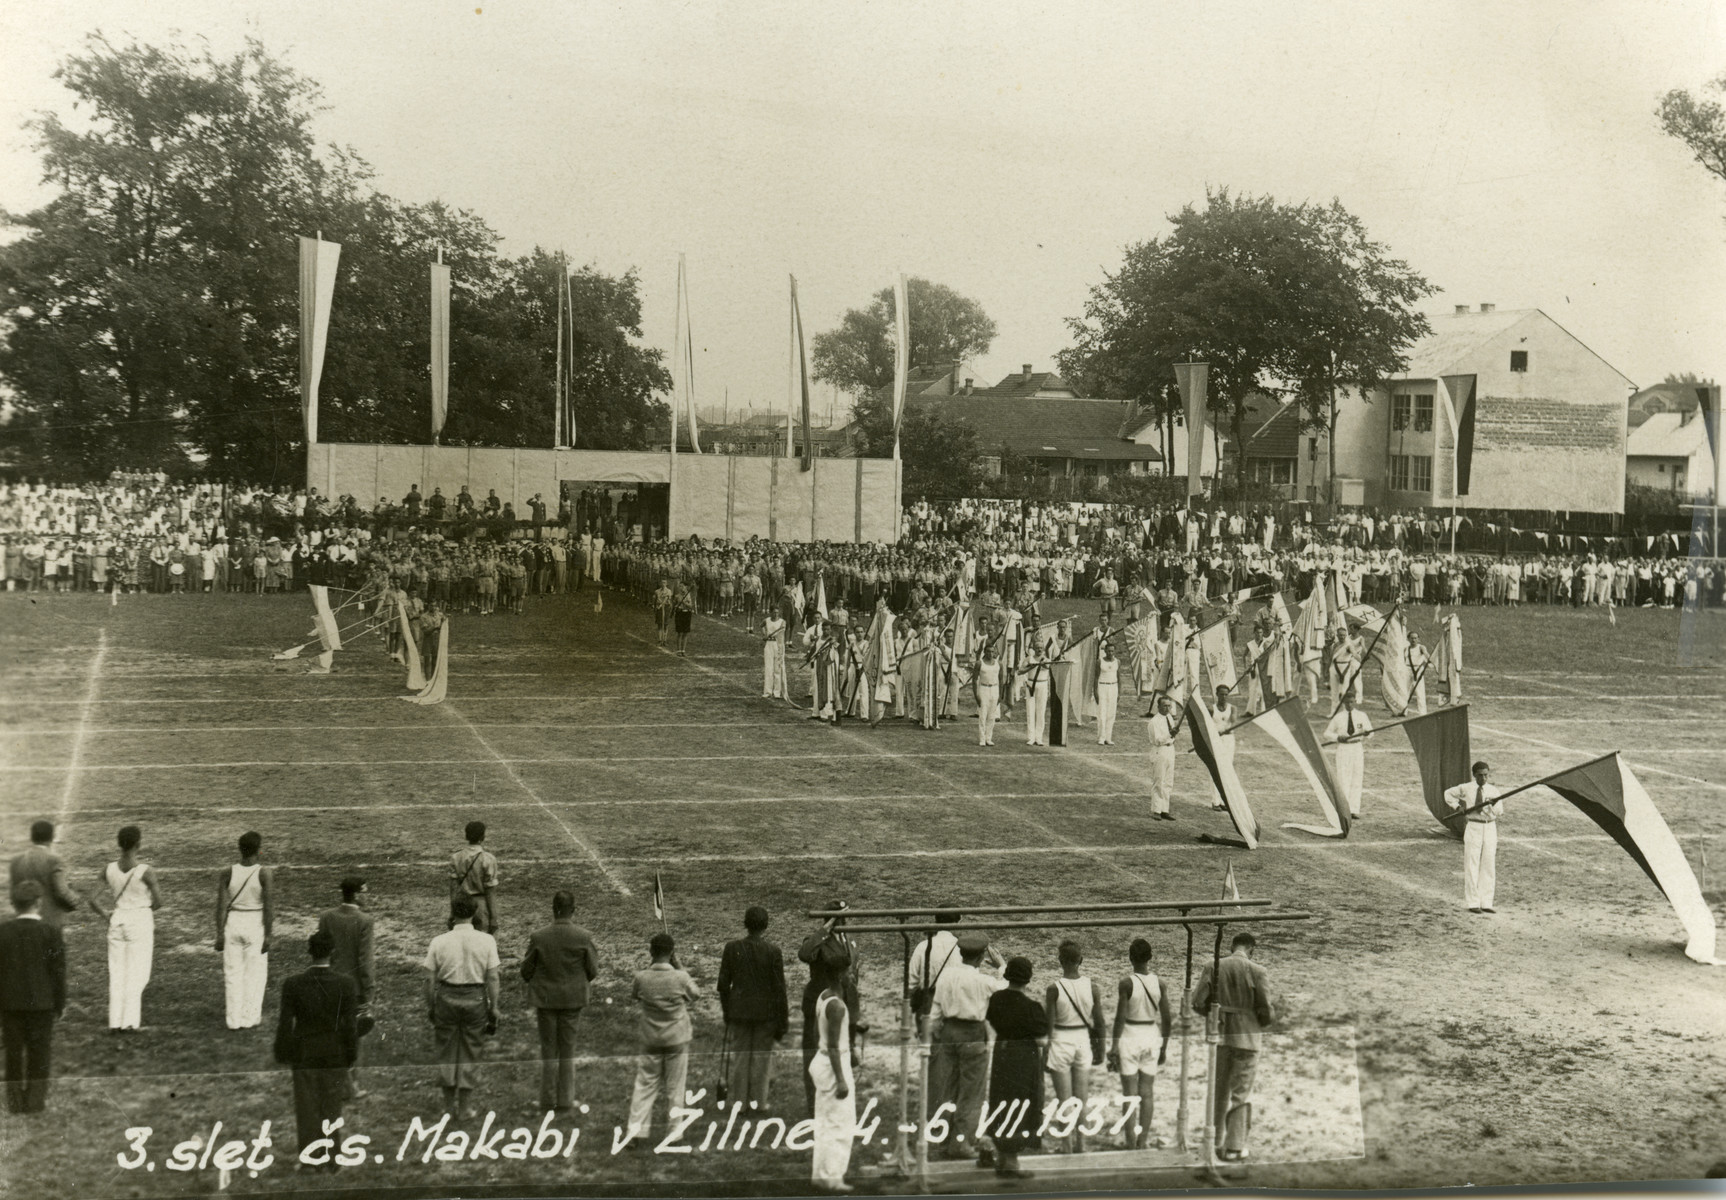 Members of the Zilina Maccabi gymnastics team stand in formation holding flags on a sports field.